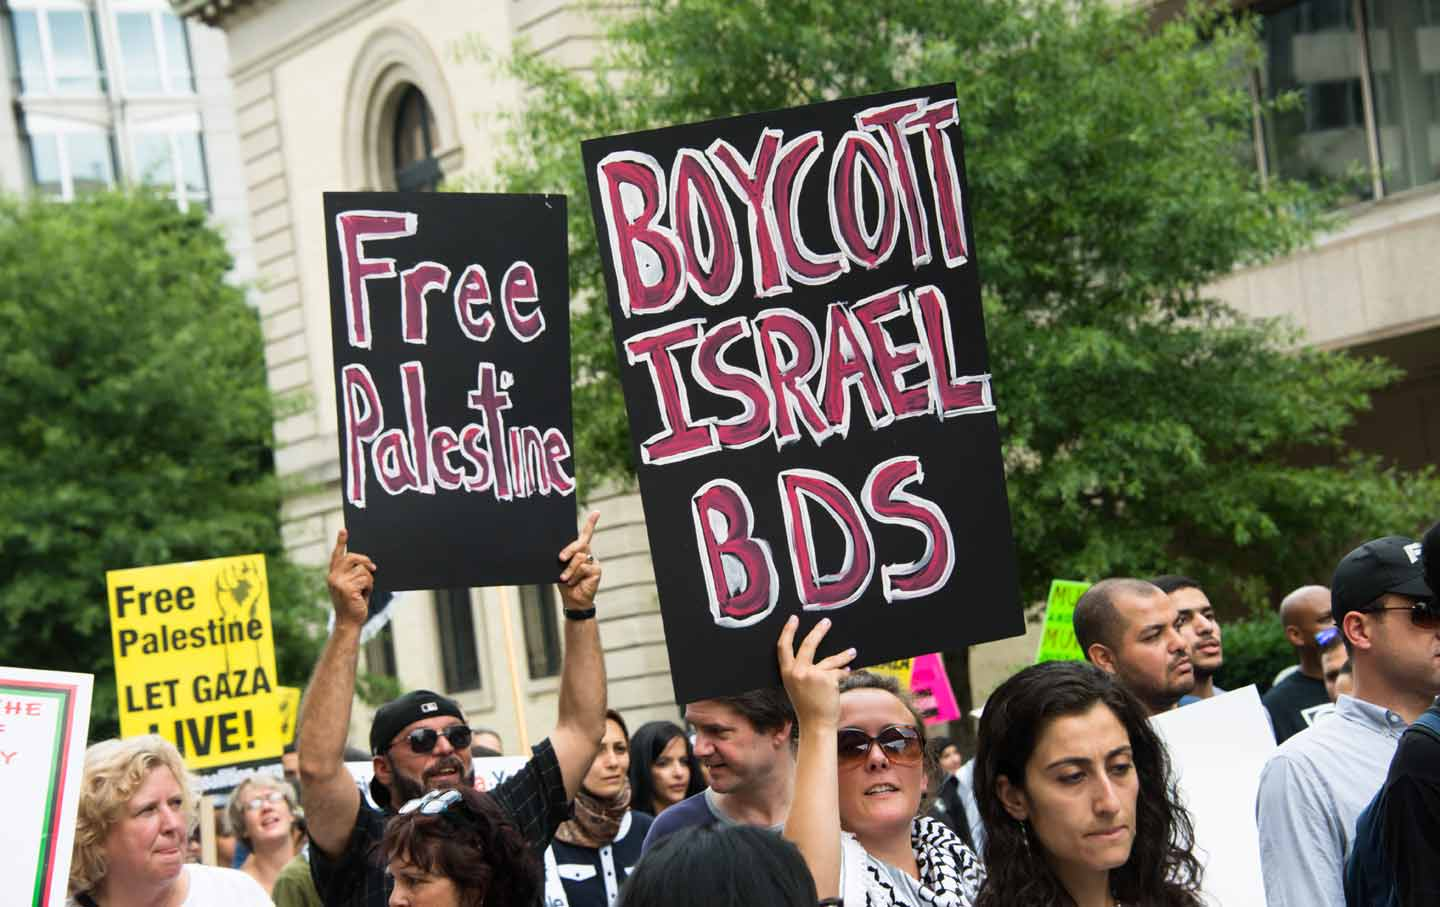 Some 10,000 demonstrators march on the White House in Washington, DC, to protest Israel's offensive in Gaza, August 2, 2014.   (Ryan Rodrick Beiler / Shutterstock.com)